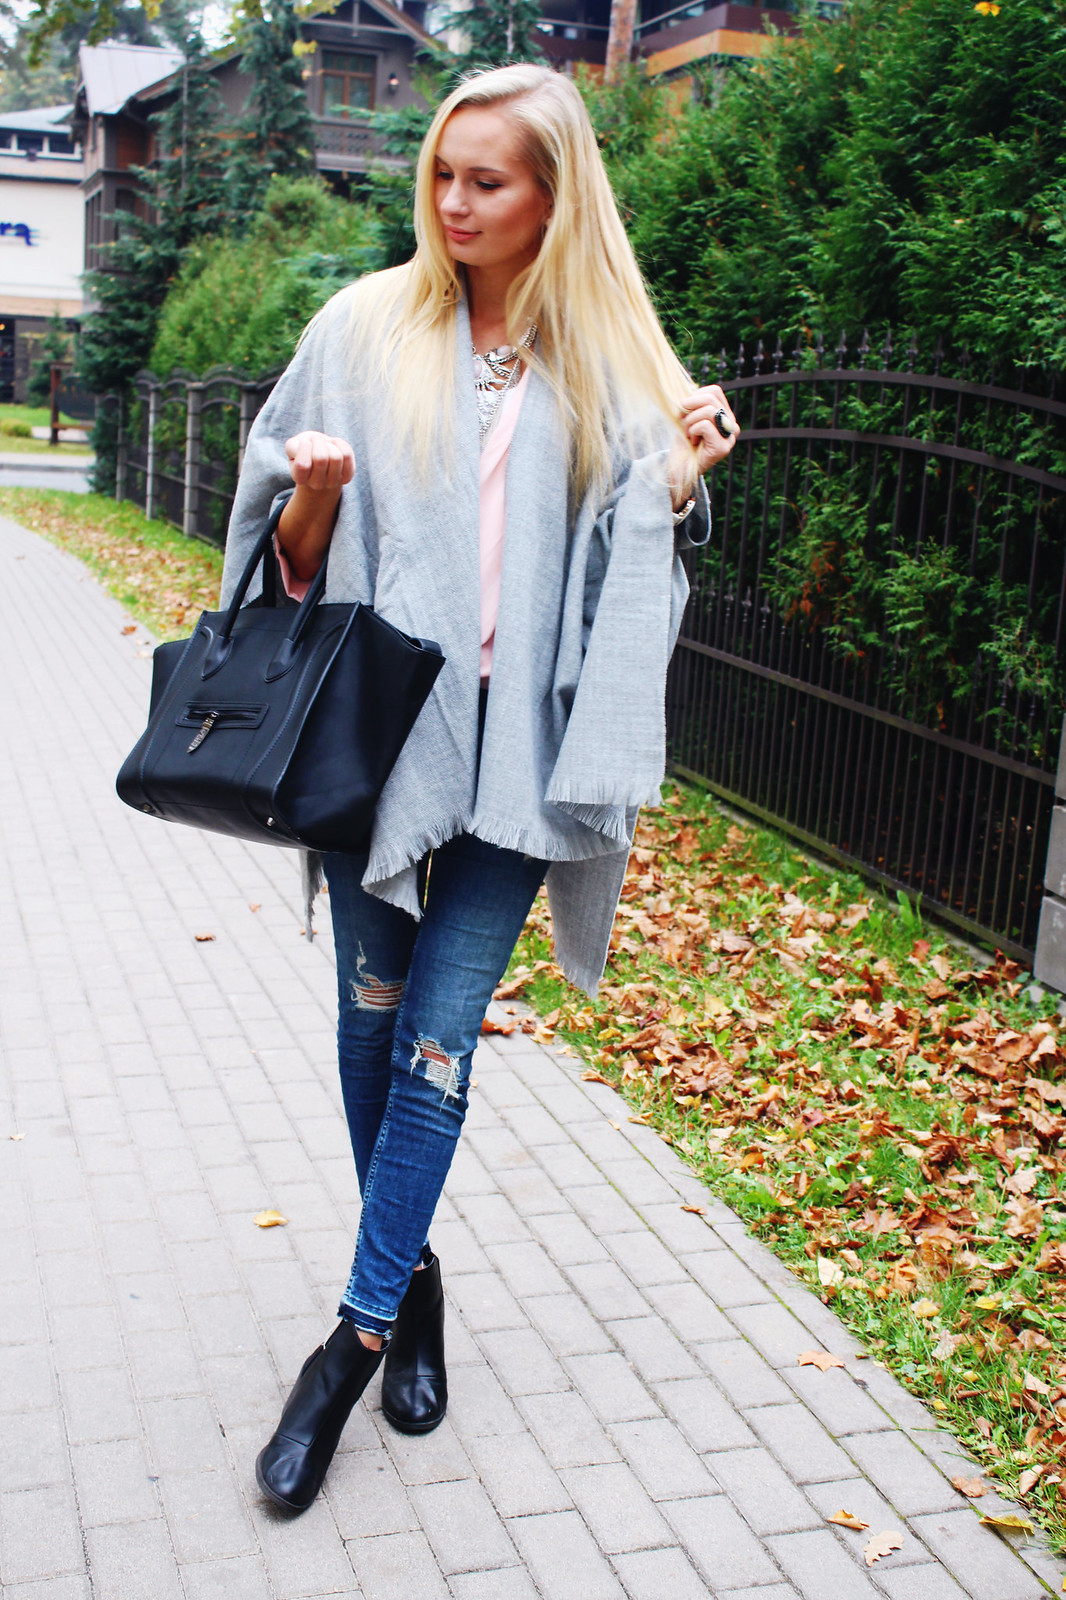 Fall outfit inspiratiob